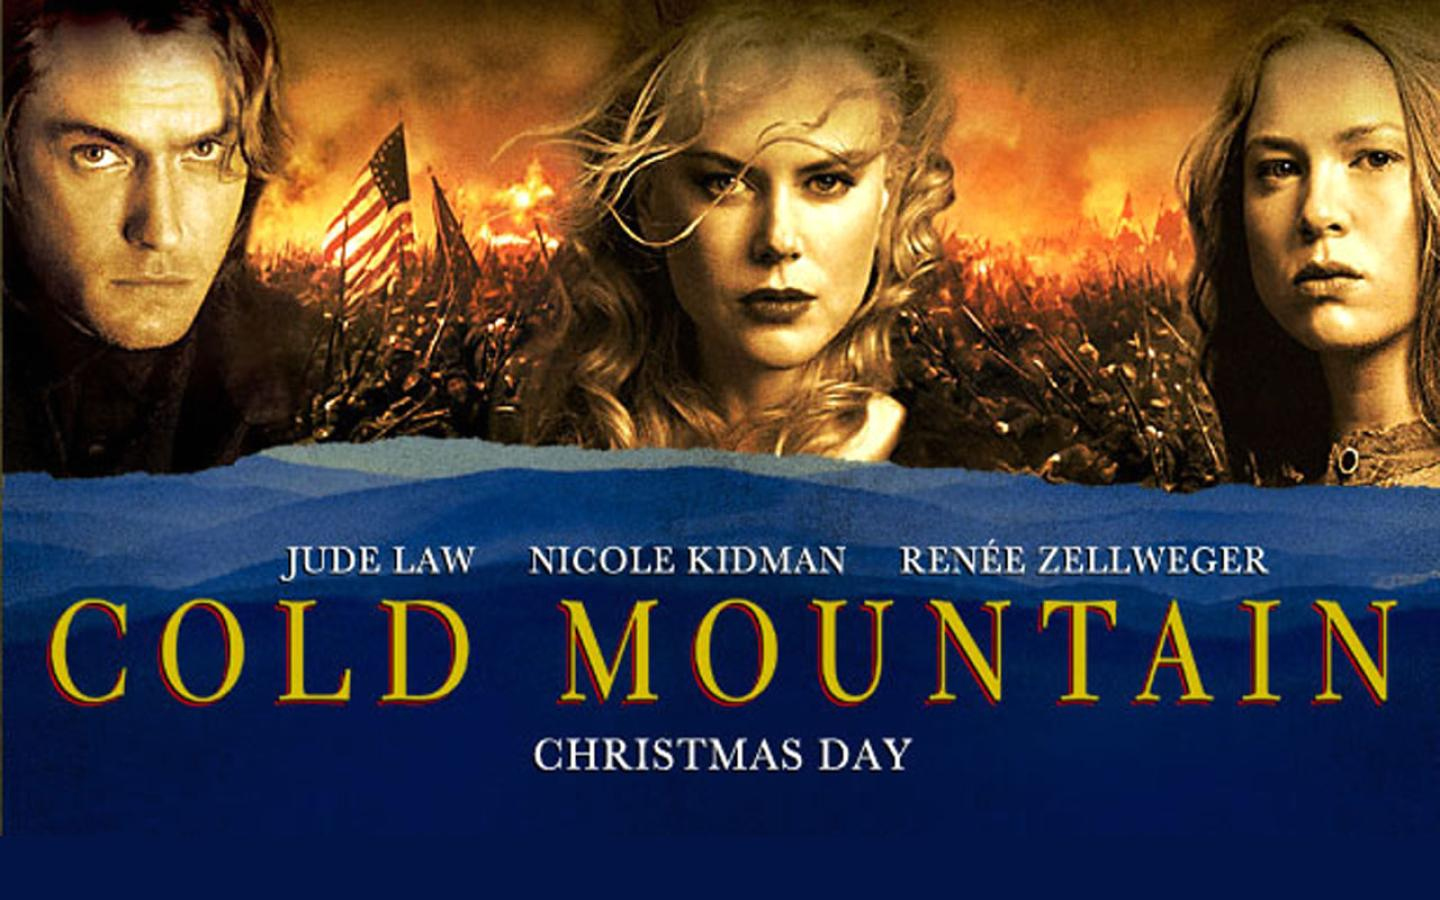 Best movie cold mountain 1440x900 wallpaper 1 more cold mountain